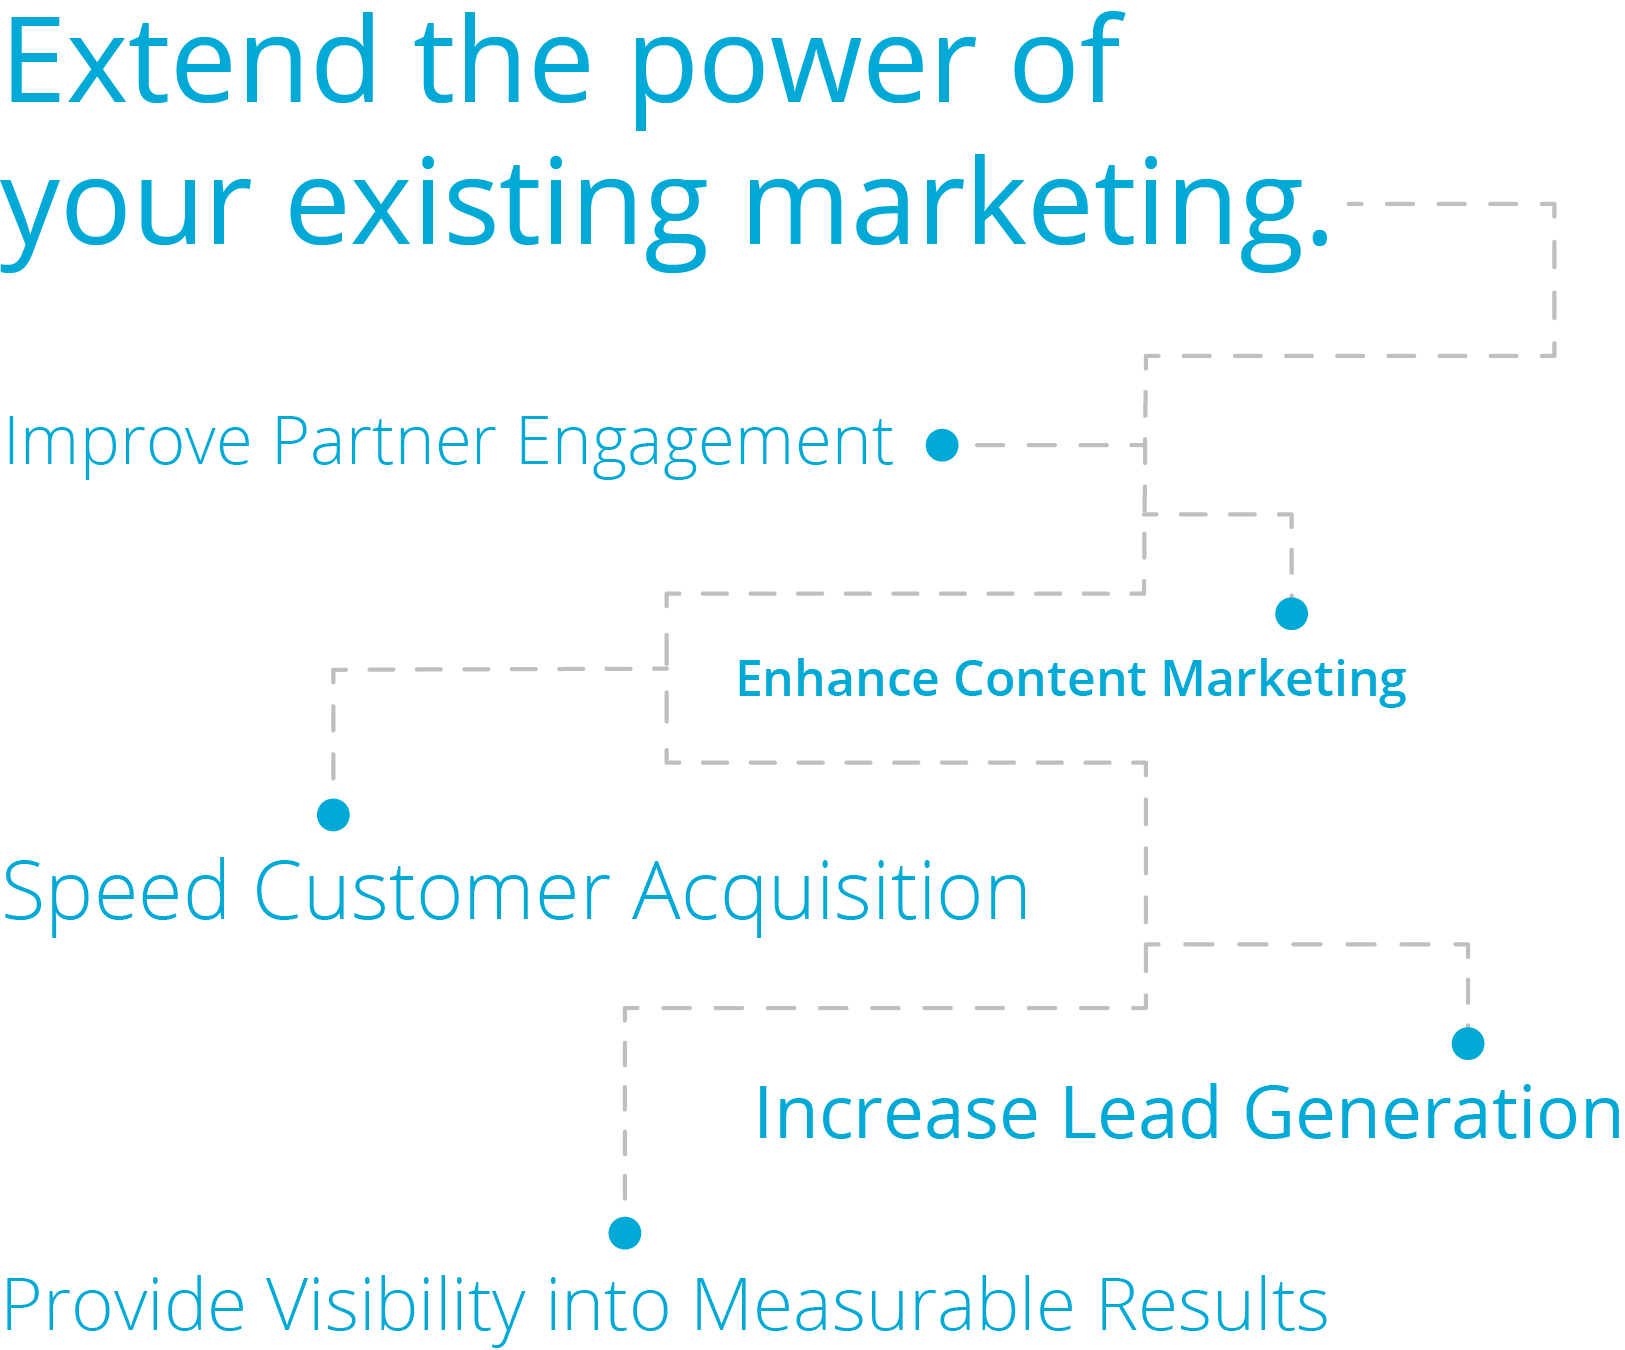 Extend the power of your existing marketing.